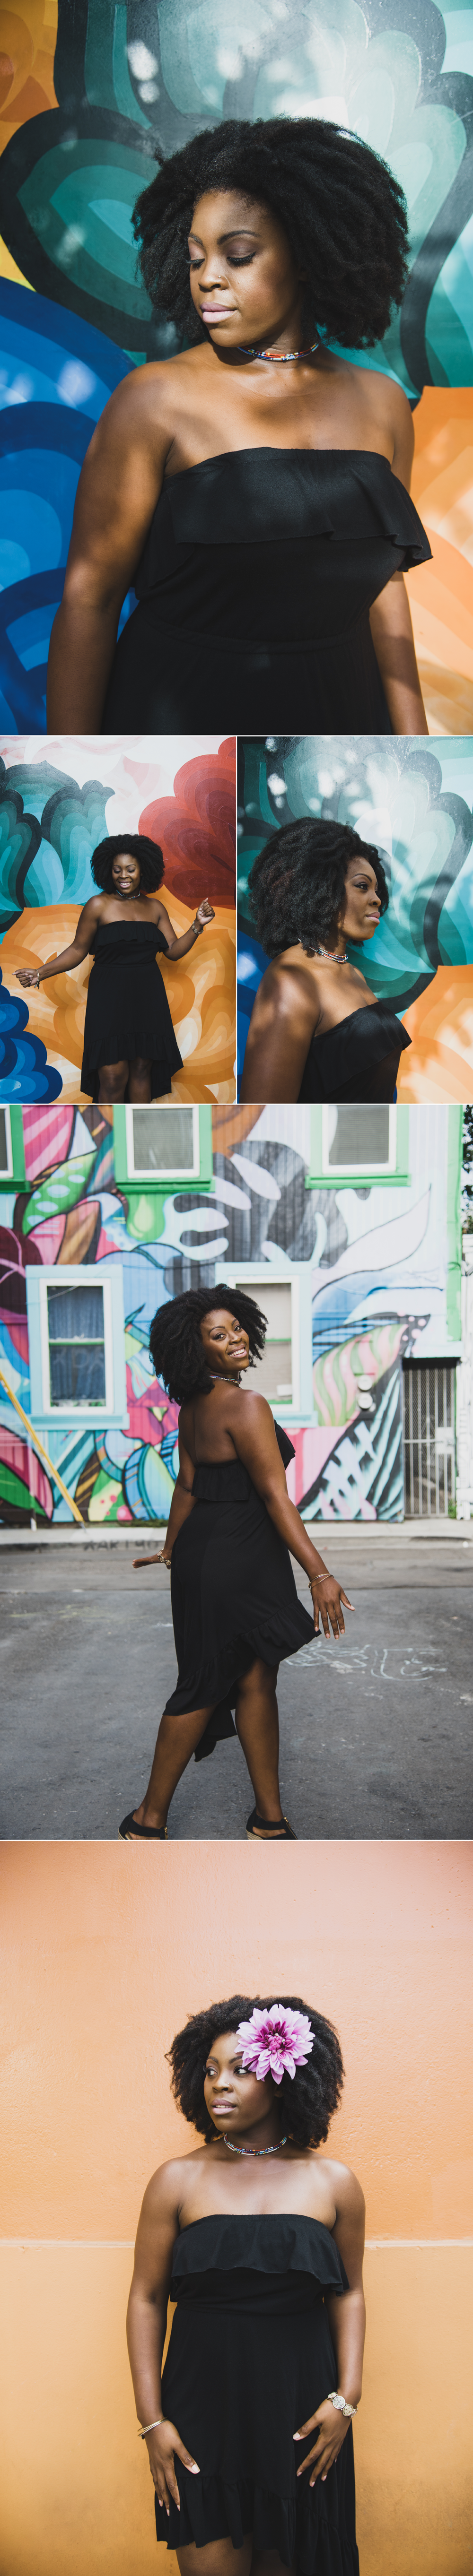 Women-afro-portrait-in-sf.png